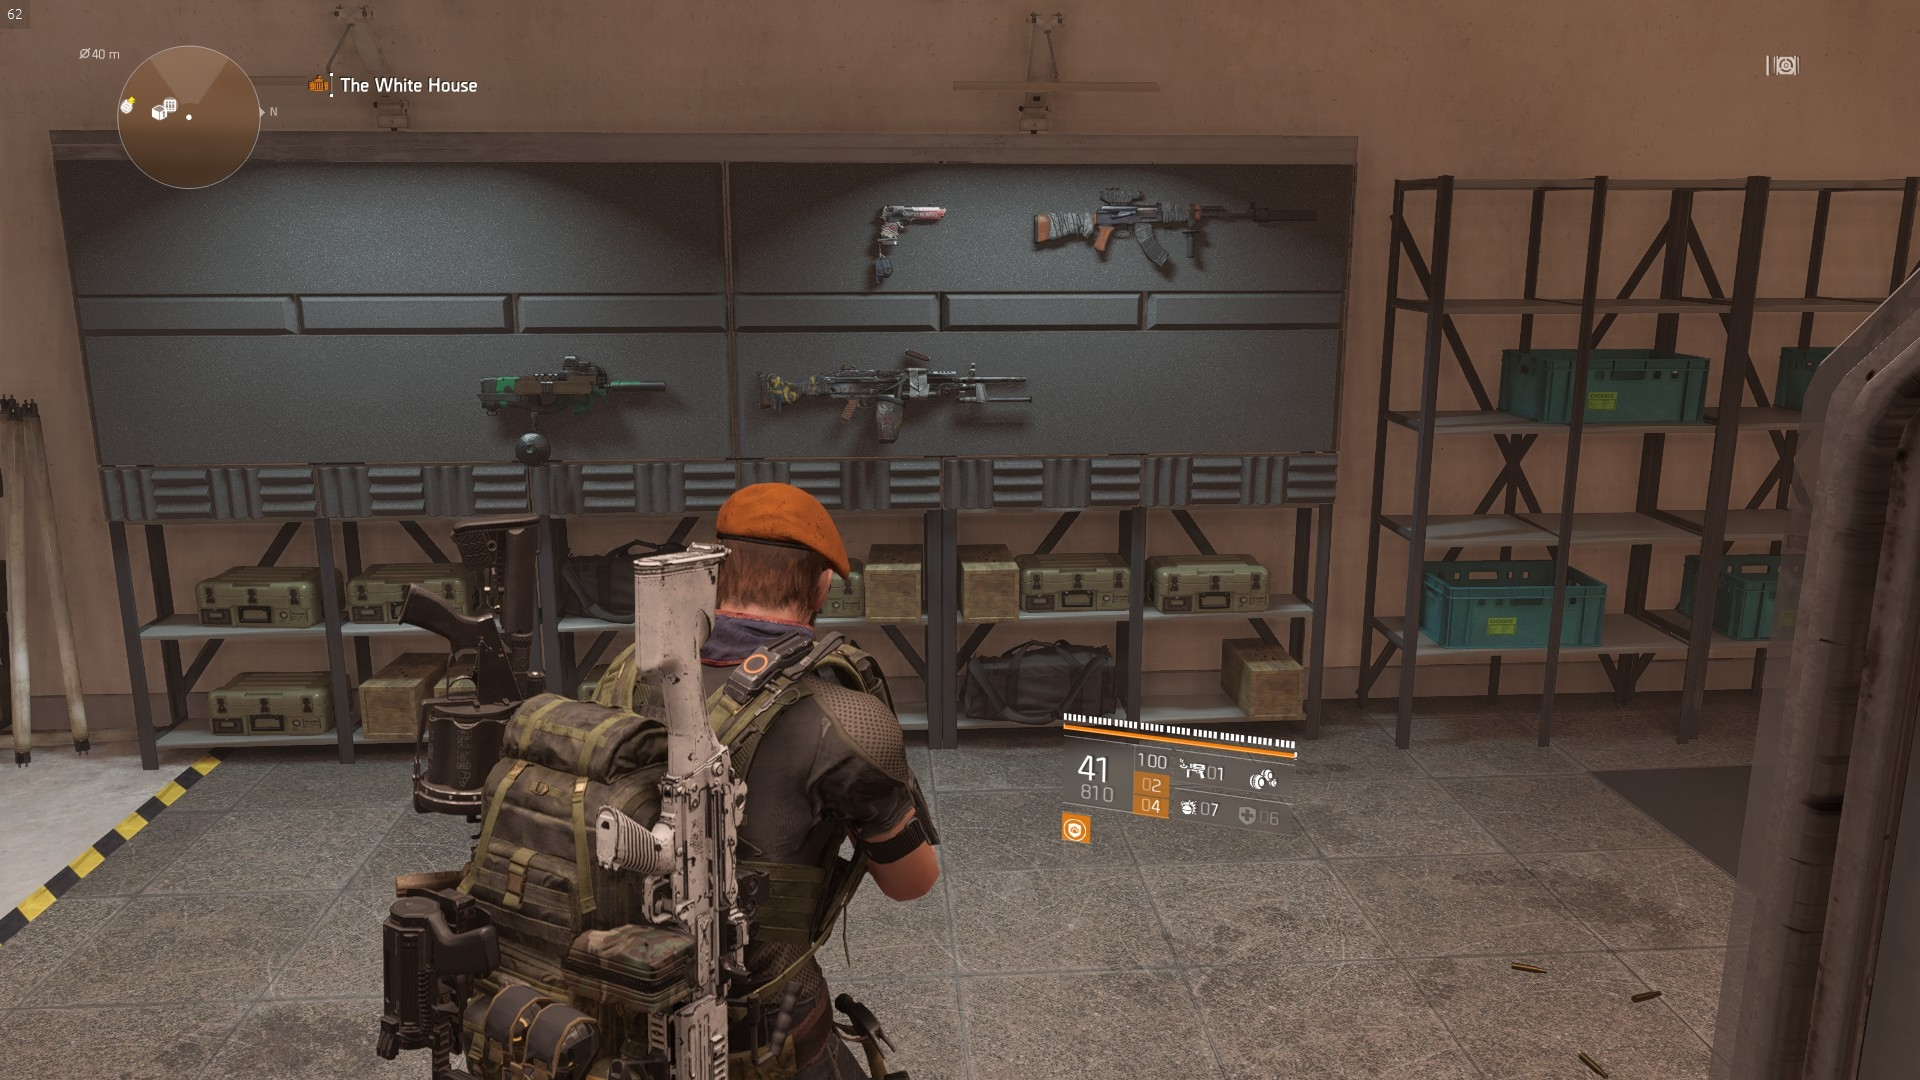 Tom Clancy's The Division 2 - that robot dog is not a good